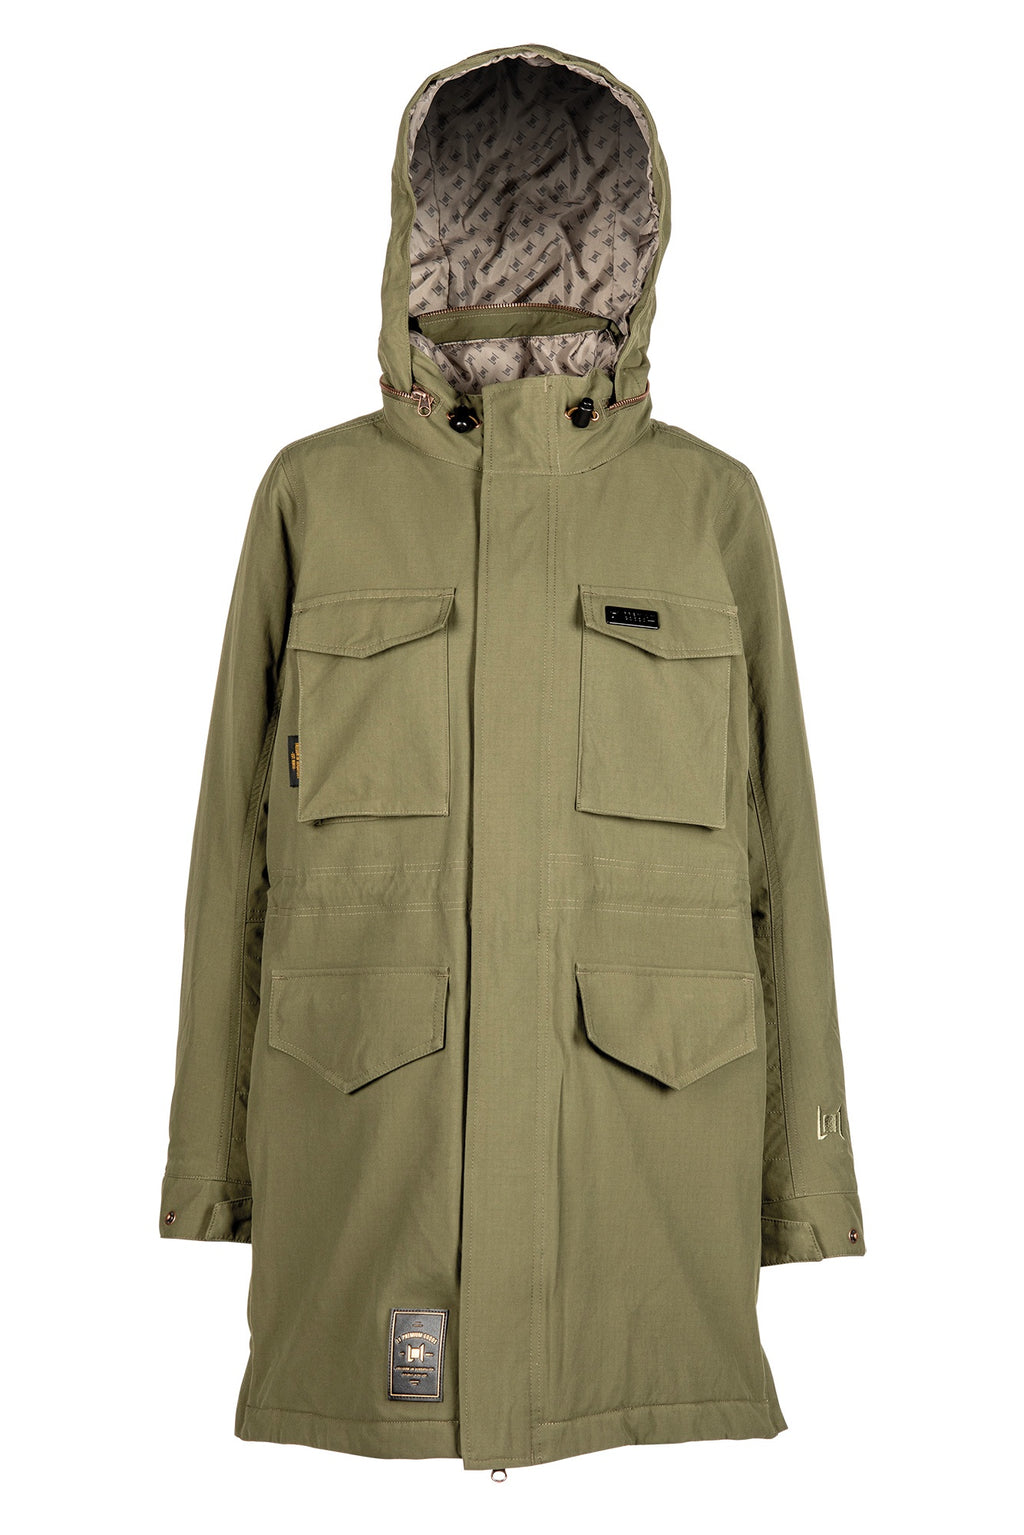 L1 Premium Goods Ranger Womens Jacket - Military